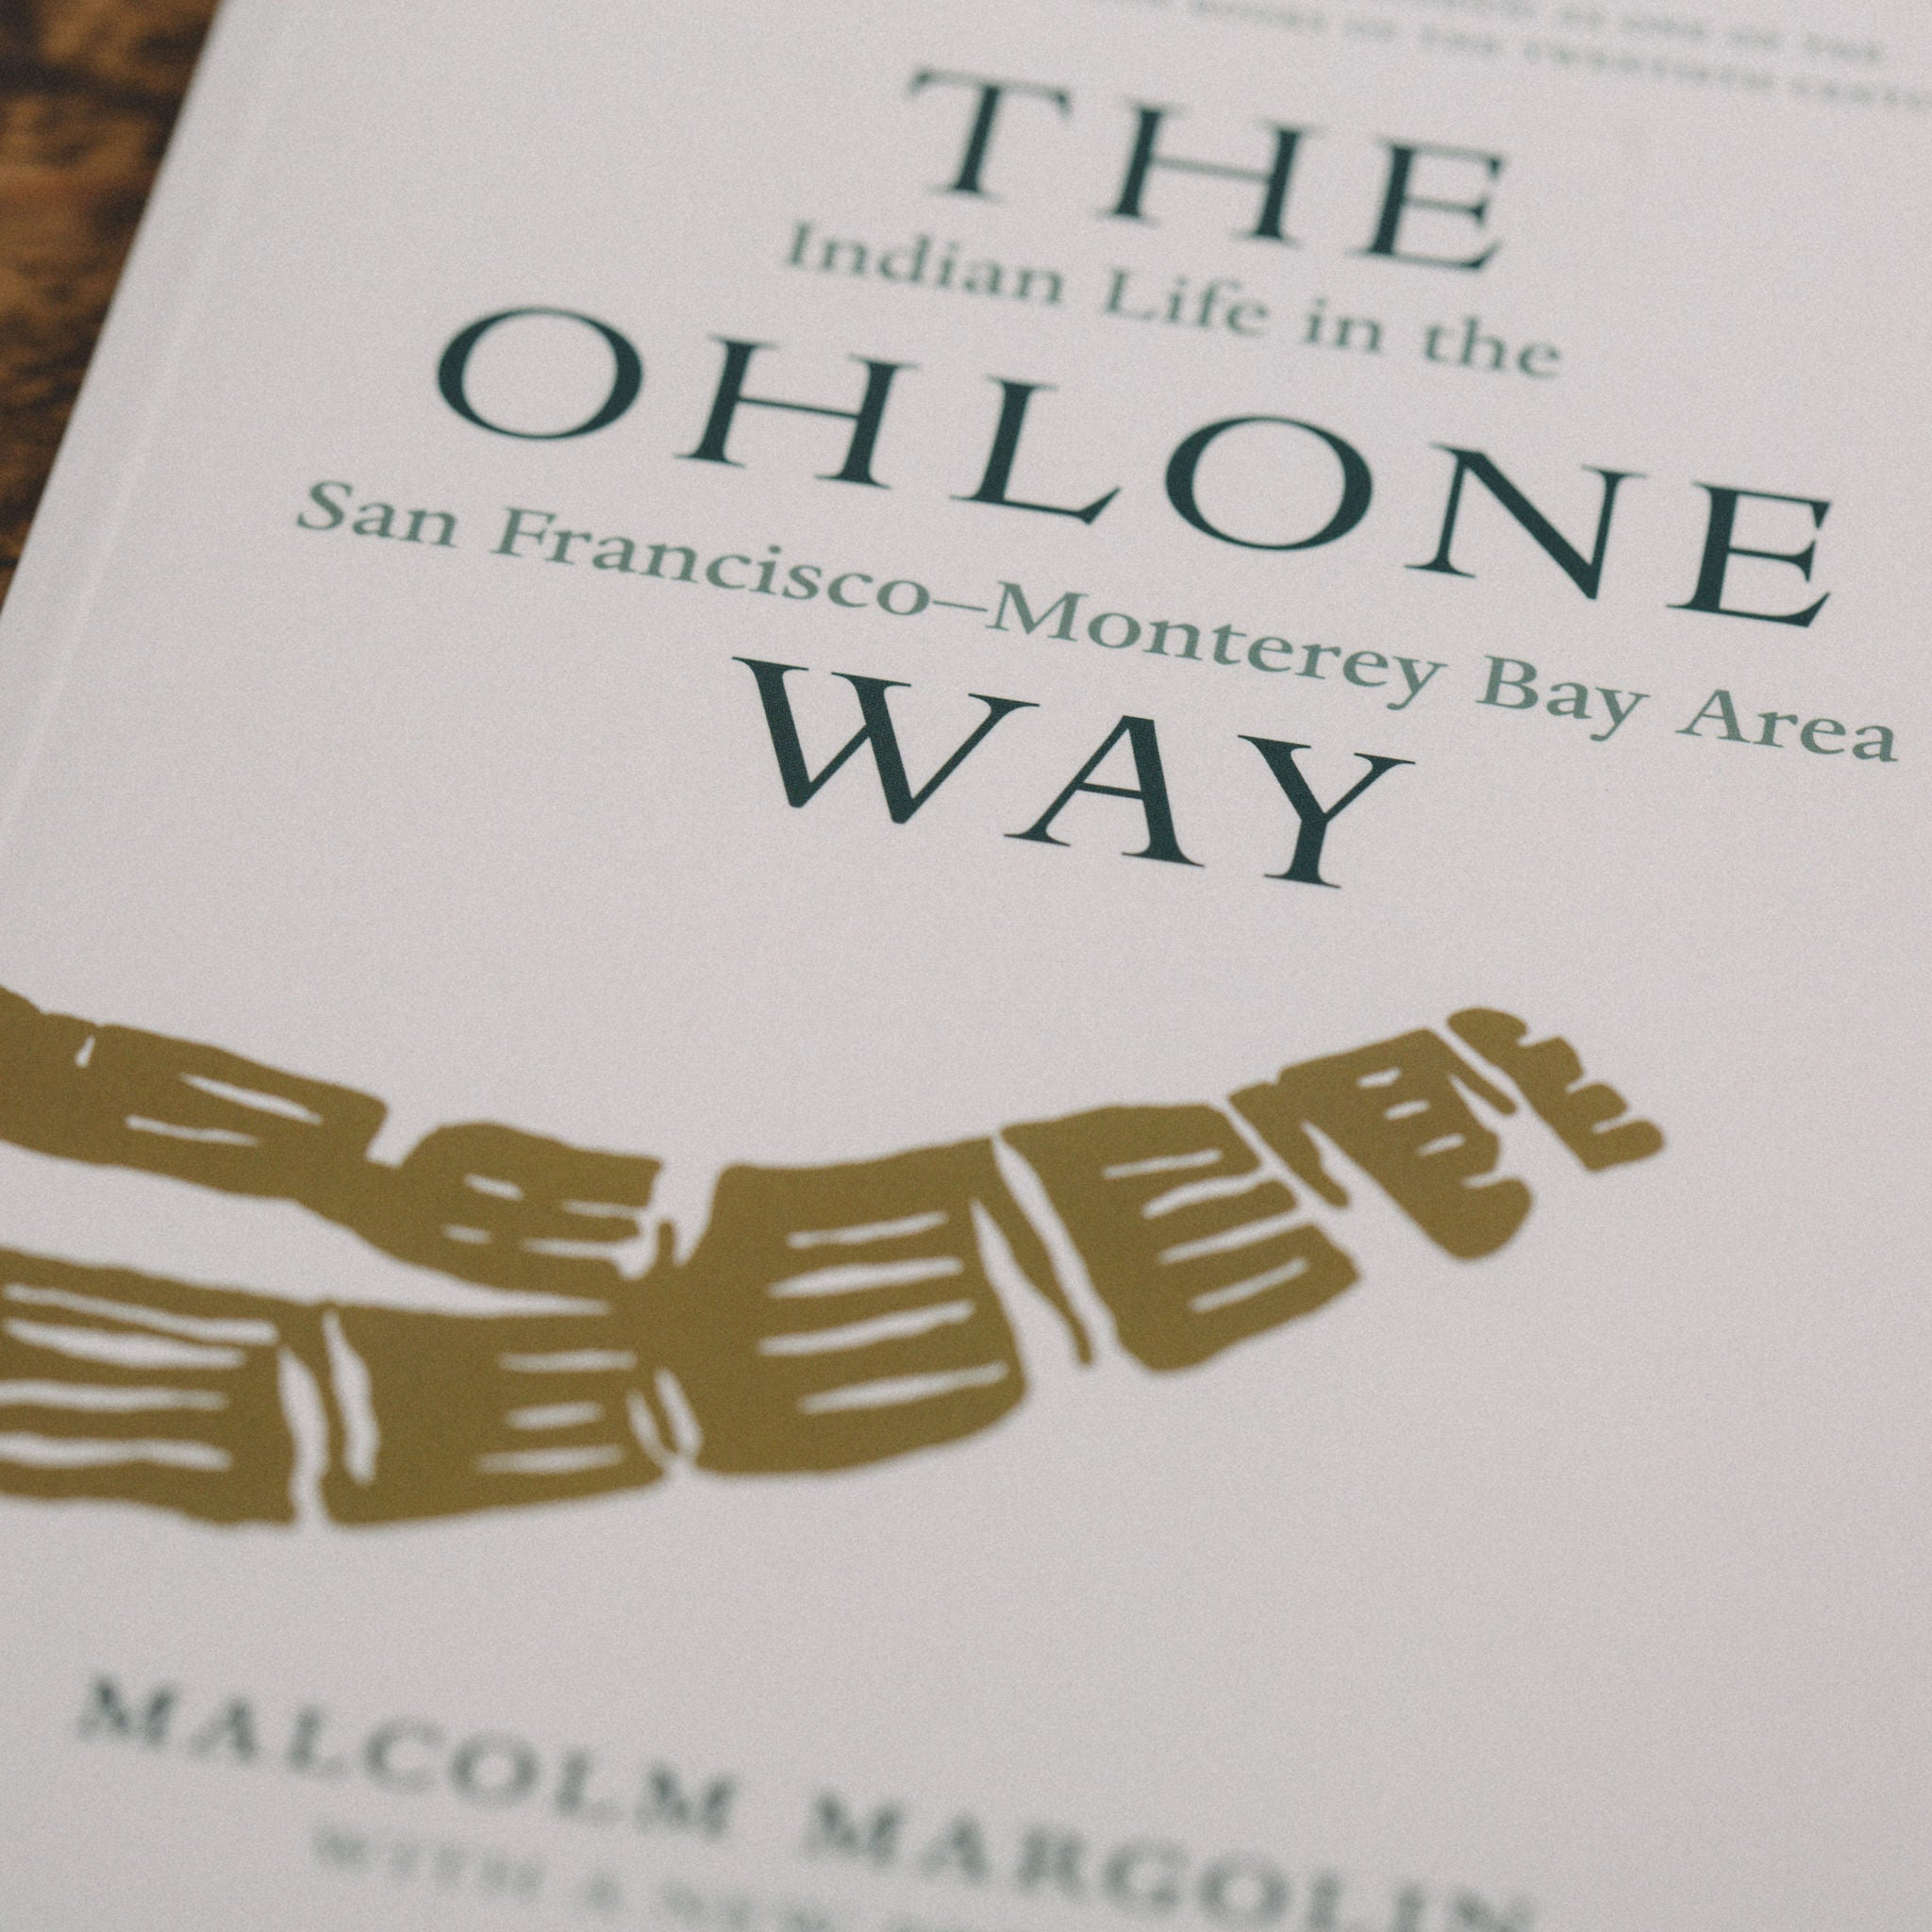 THE OHLONE WAY || MALCOLM MARGOLIN